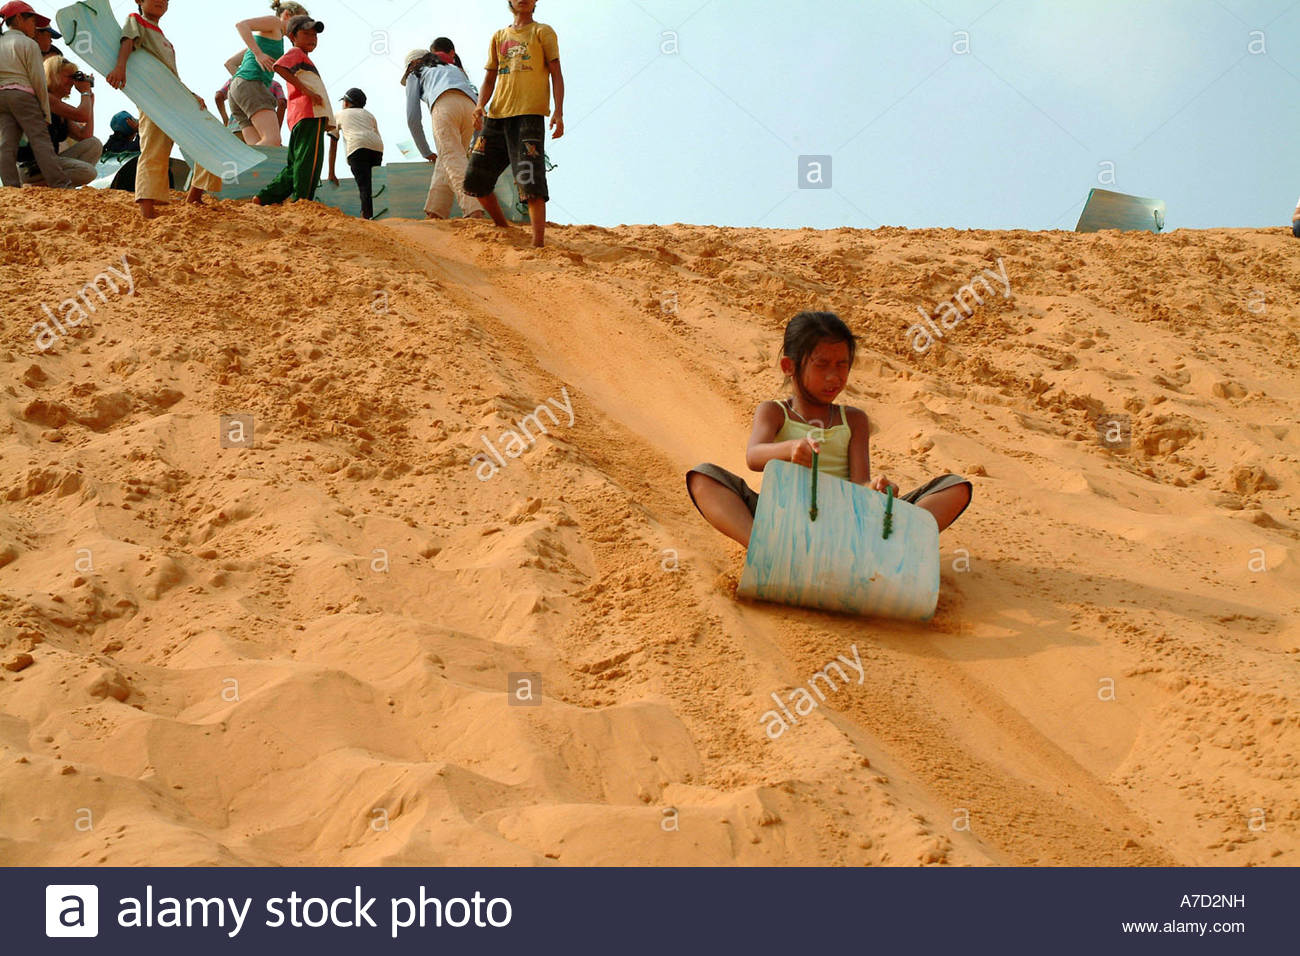 Sand Surfing Stock Photos Sand Surfing Stock Images Alamy